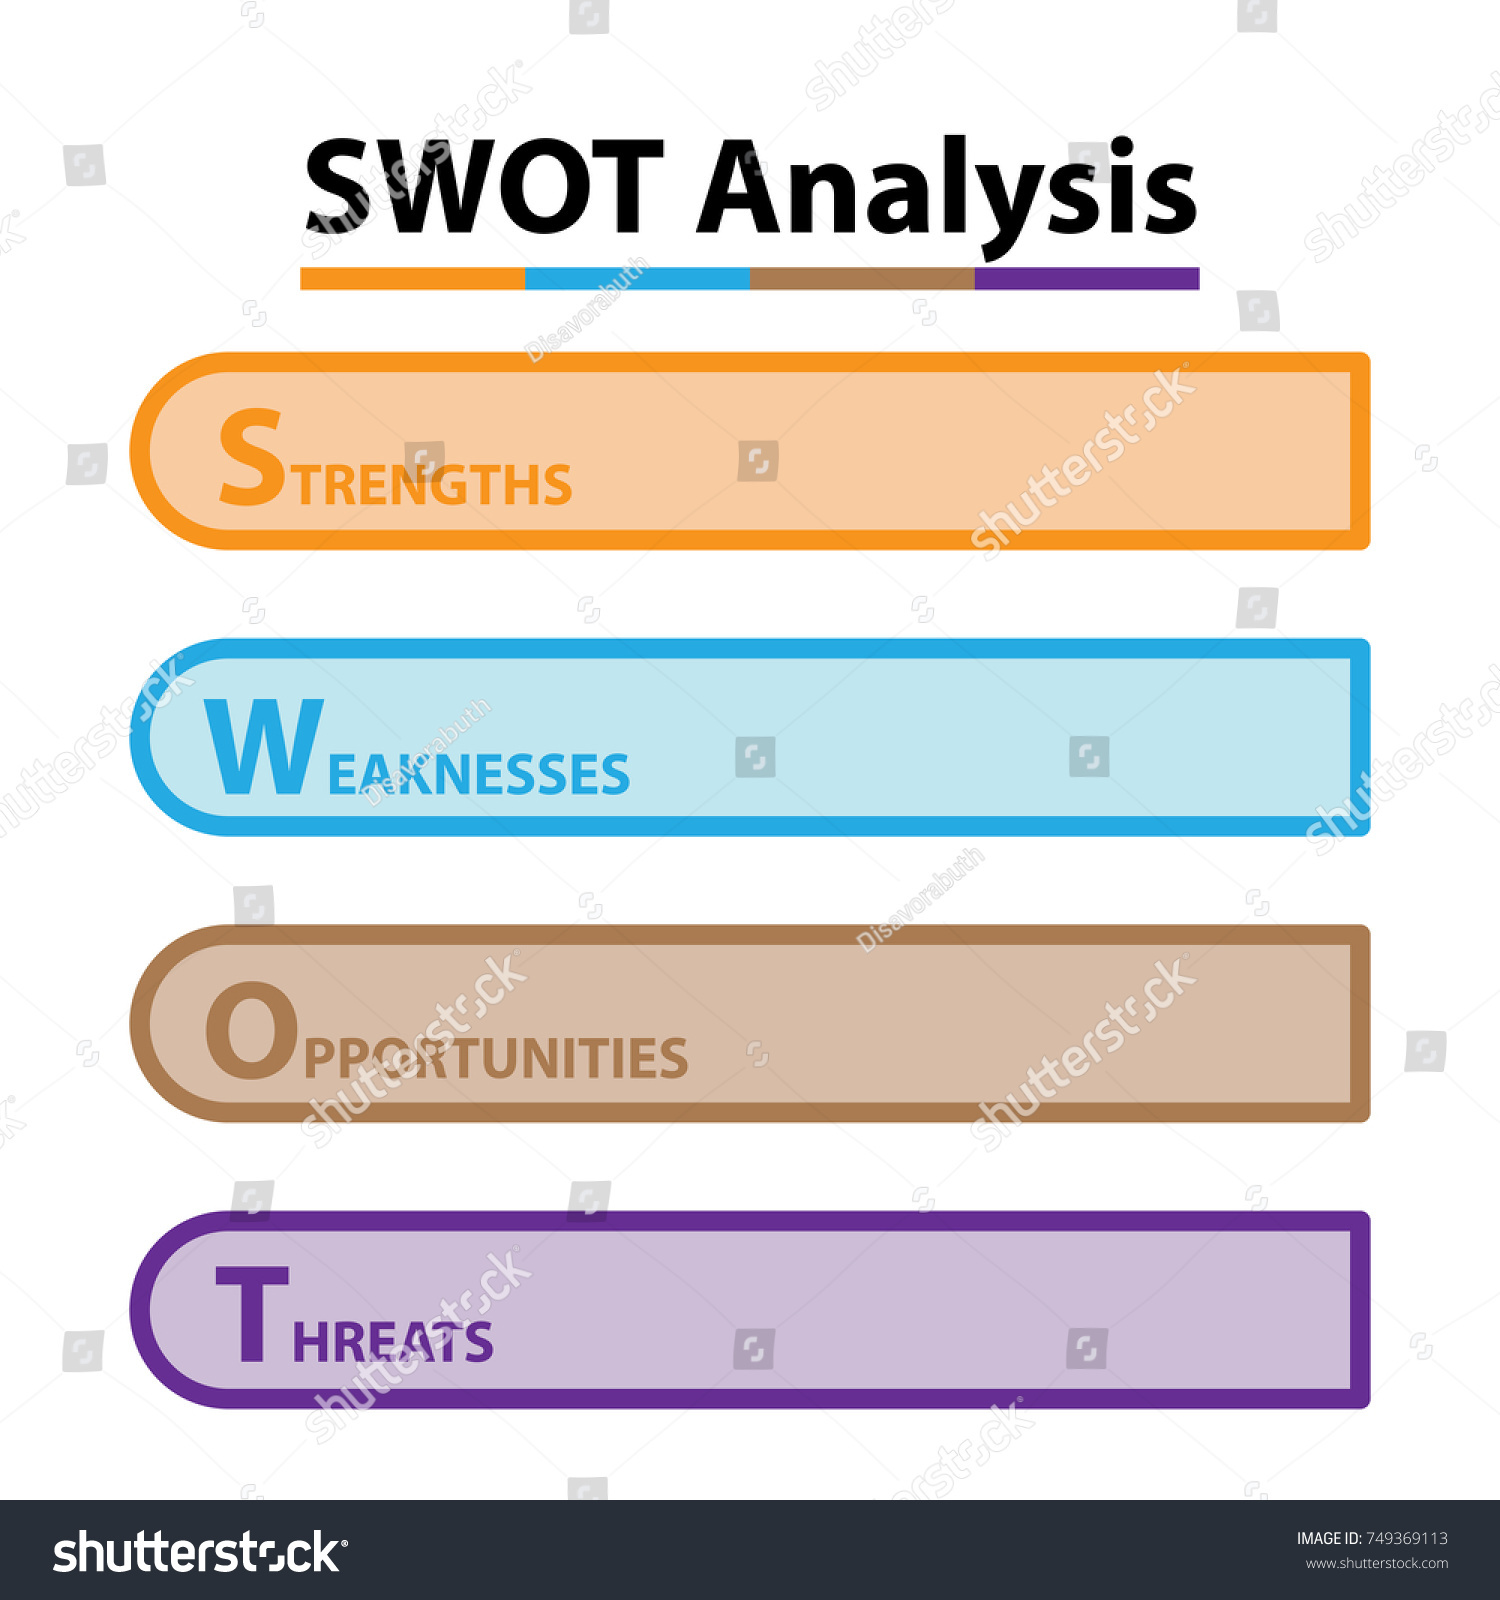 swot ugg Strengths, weaknesses, opportunities and threats (swot) analysis is a strategy development tool that matches internal organizational strengths and weaknesses with external opportunities and threats.